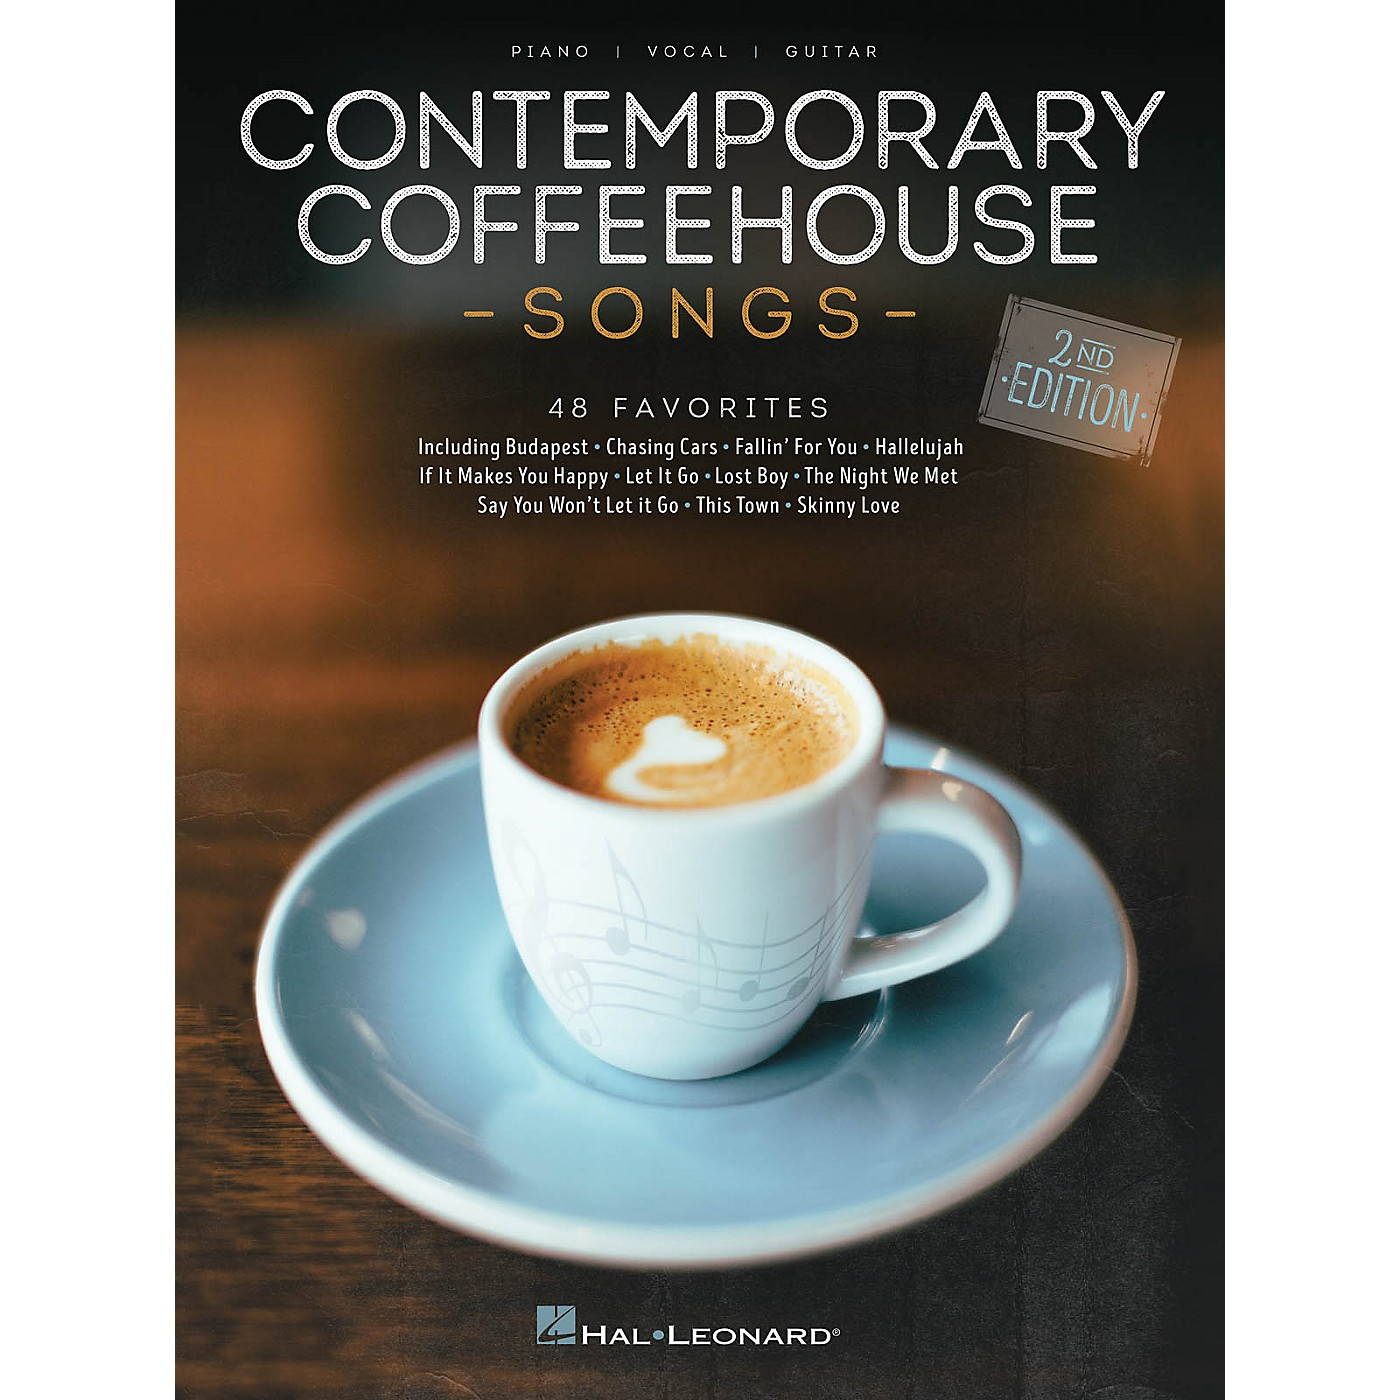 Hal Leonard Contemporary Coffeehouse Songs - 2nd Edition Piano/Vocal/Guitar Songbook thumbnail